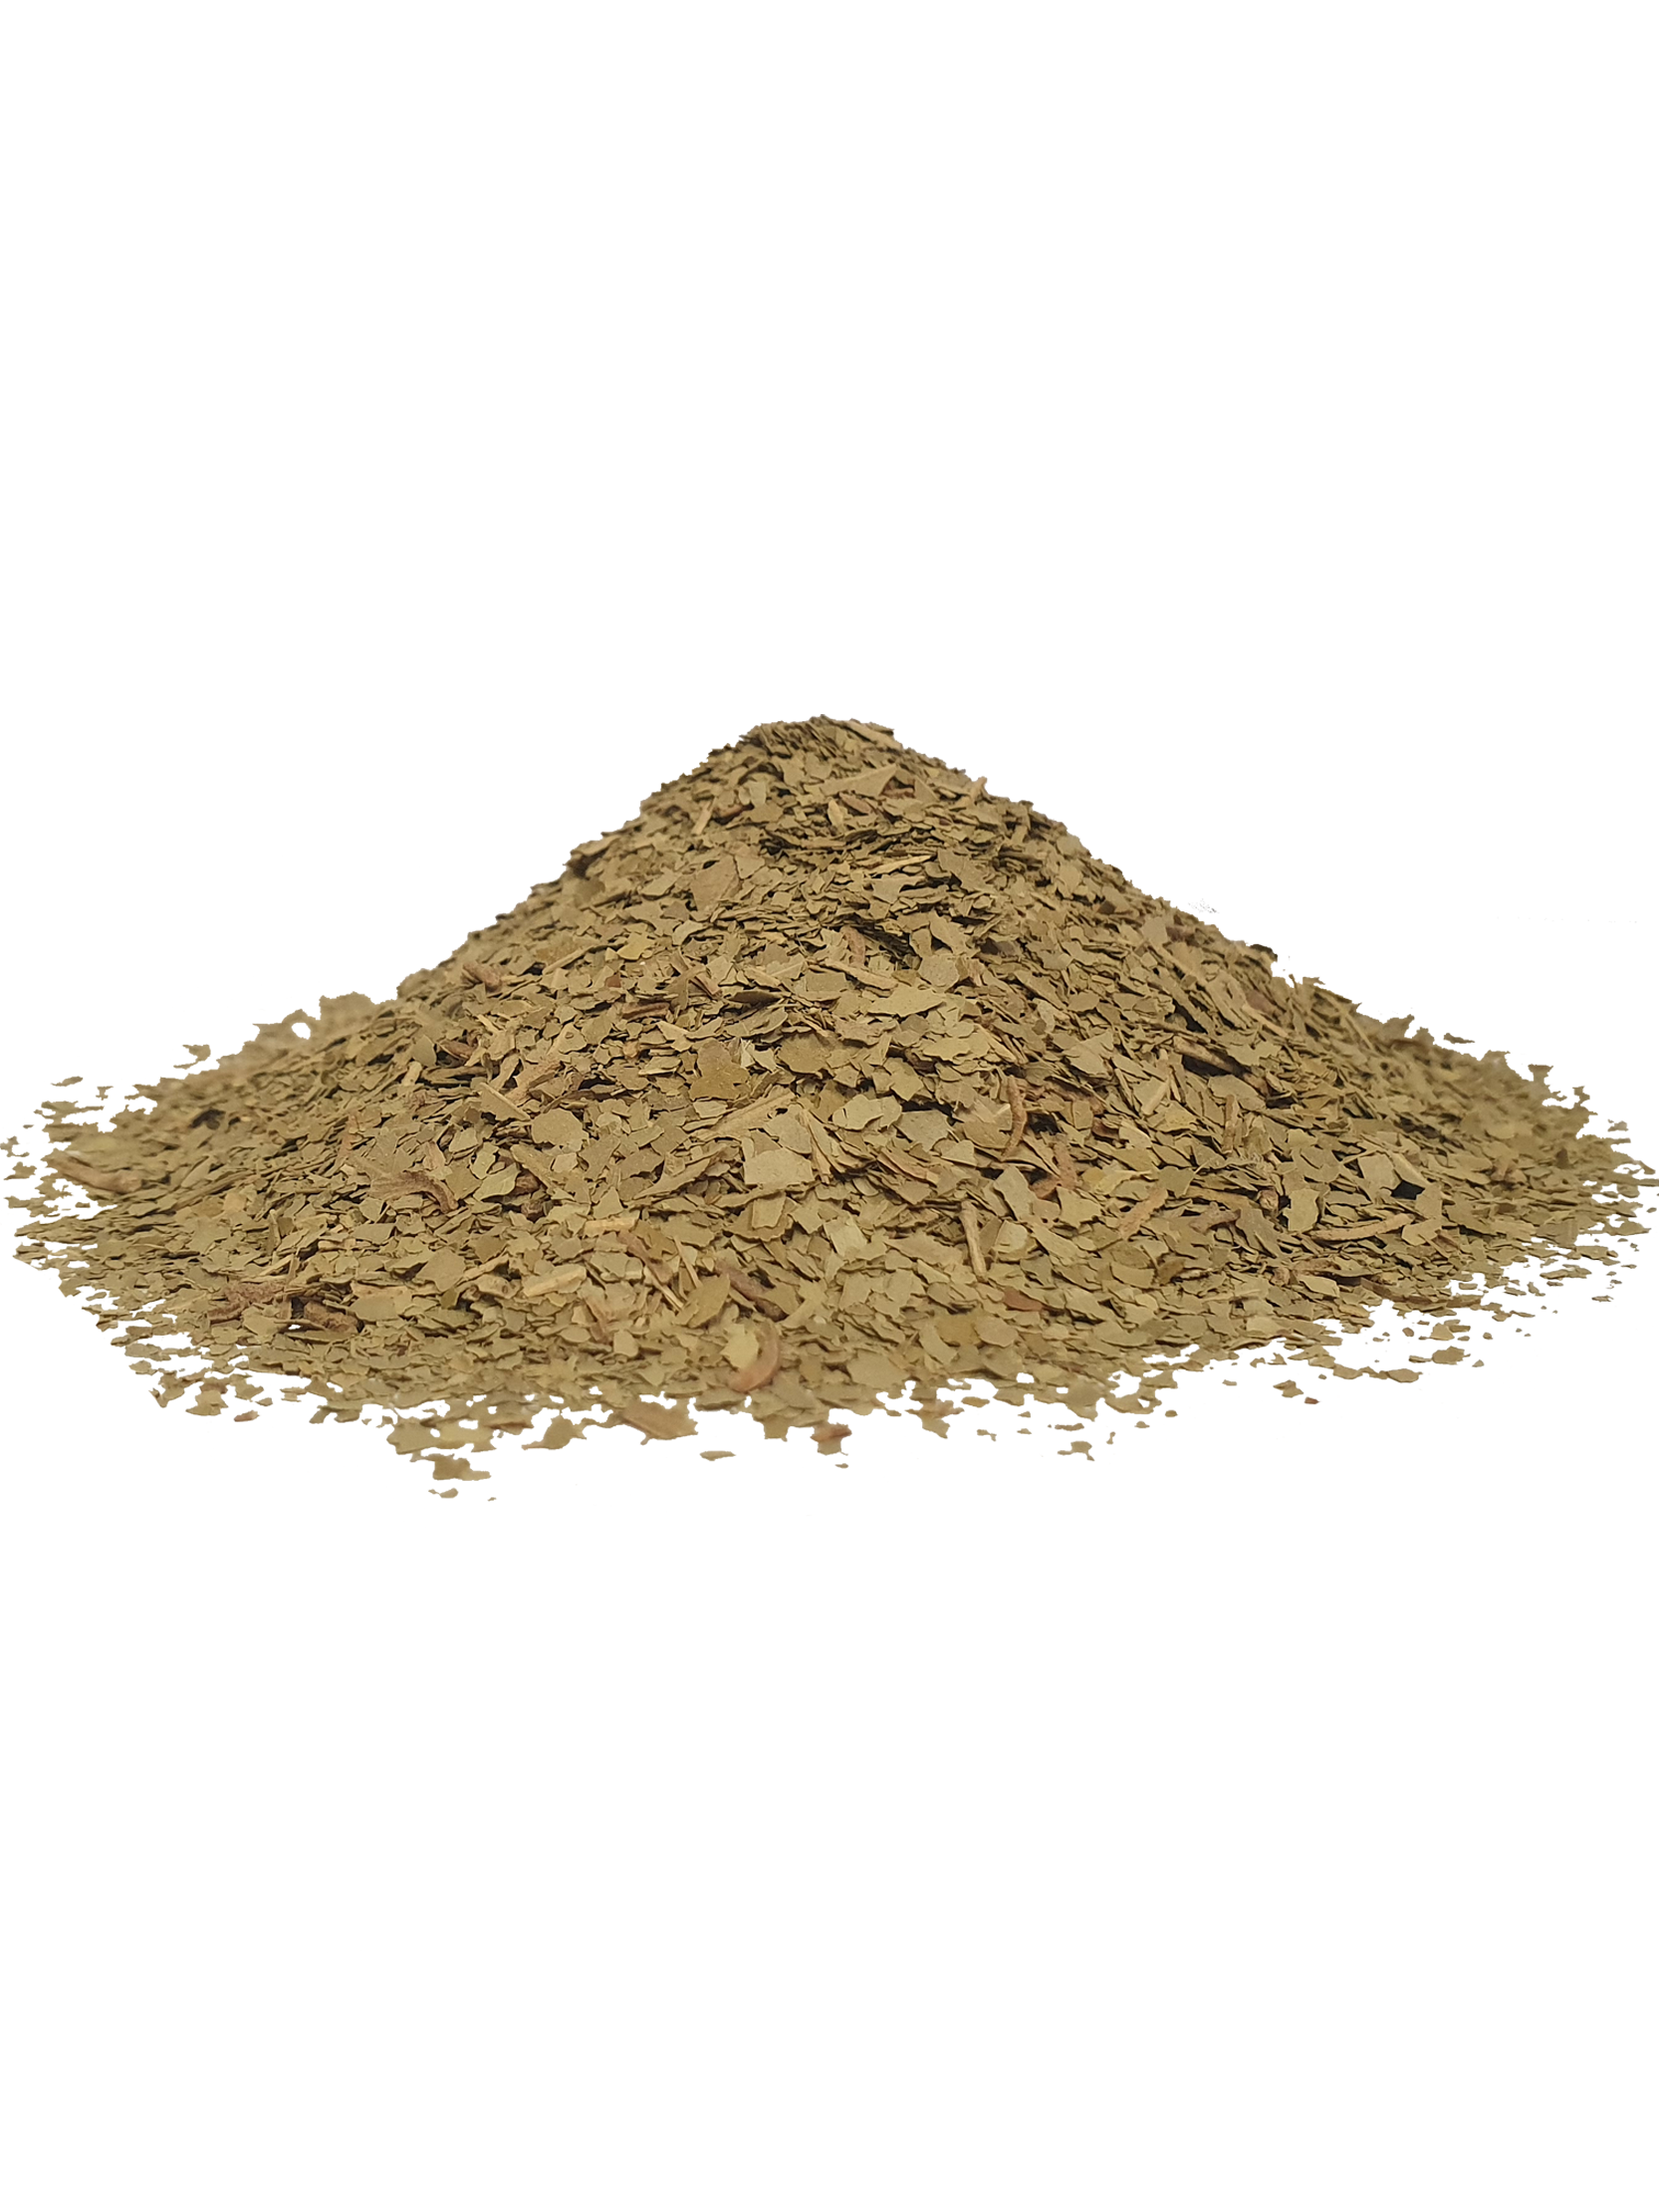 Aniseed Myrtle kg